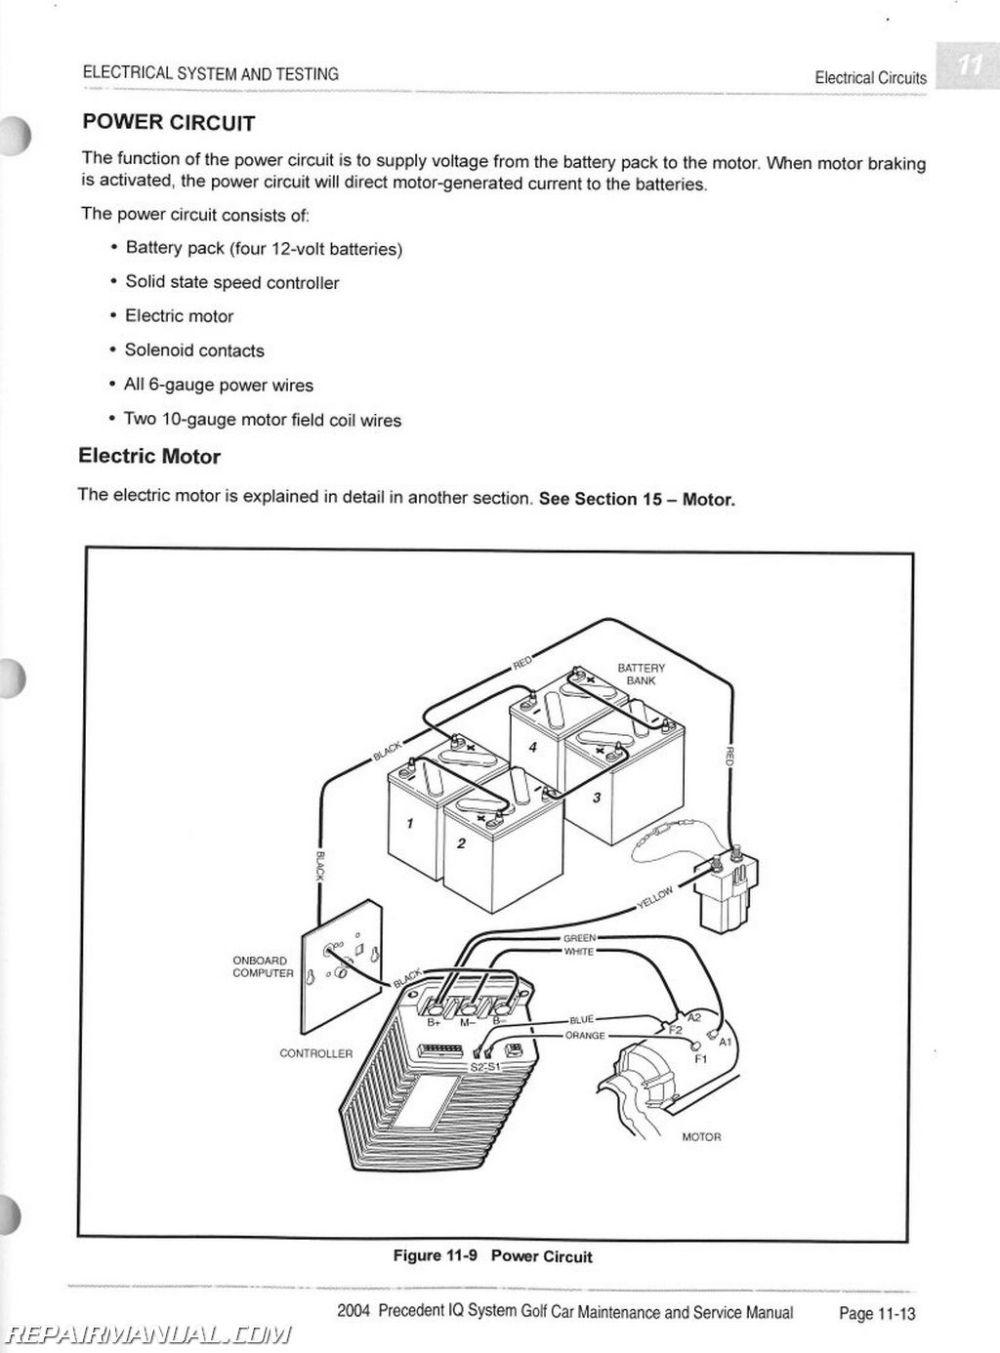 medium resolution of club car manuals and diagrams wiring diagram portal 2007 polaris ranger parts diagram 2004 club car